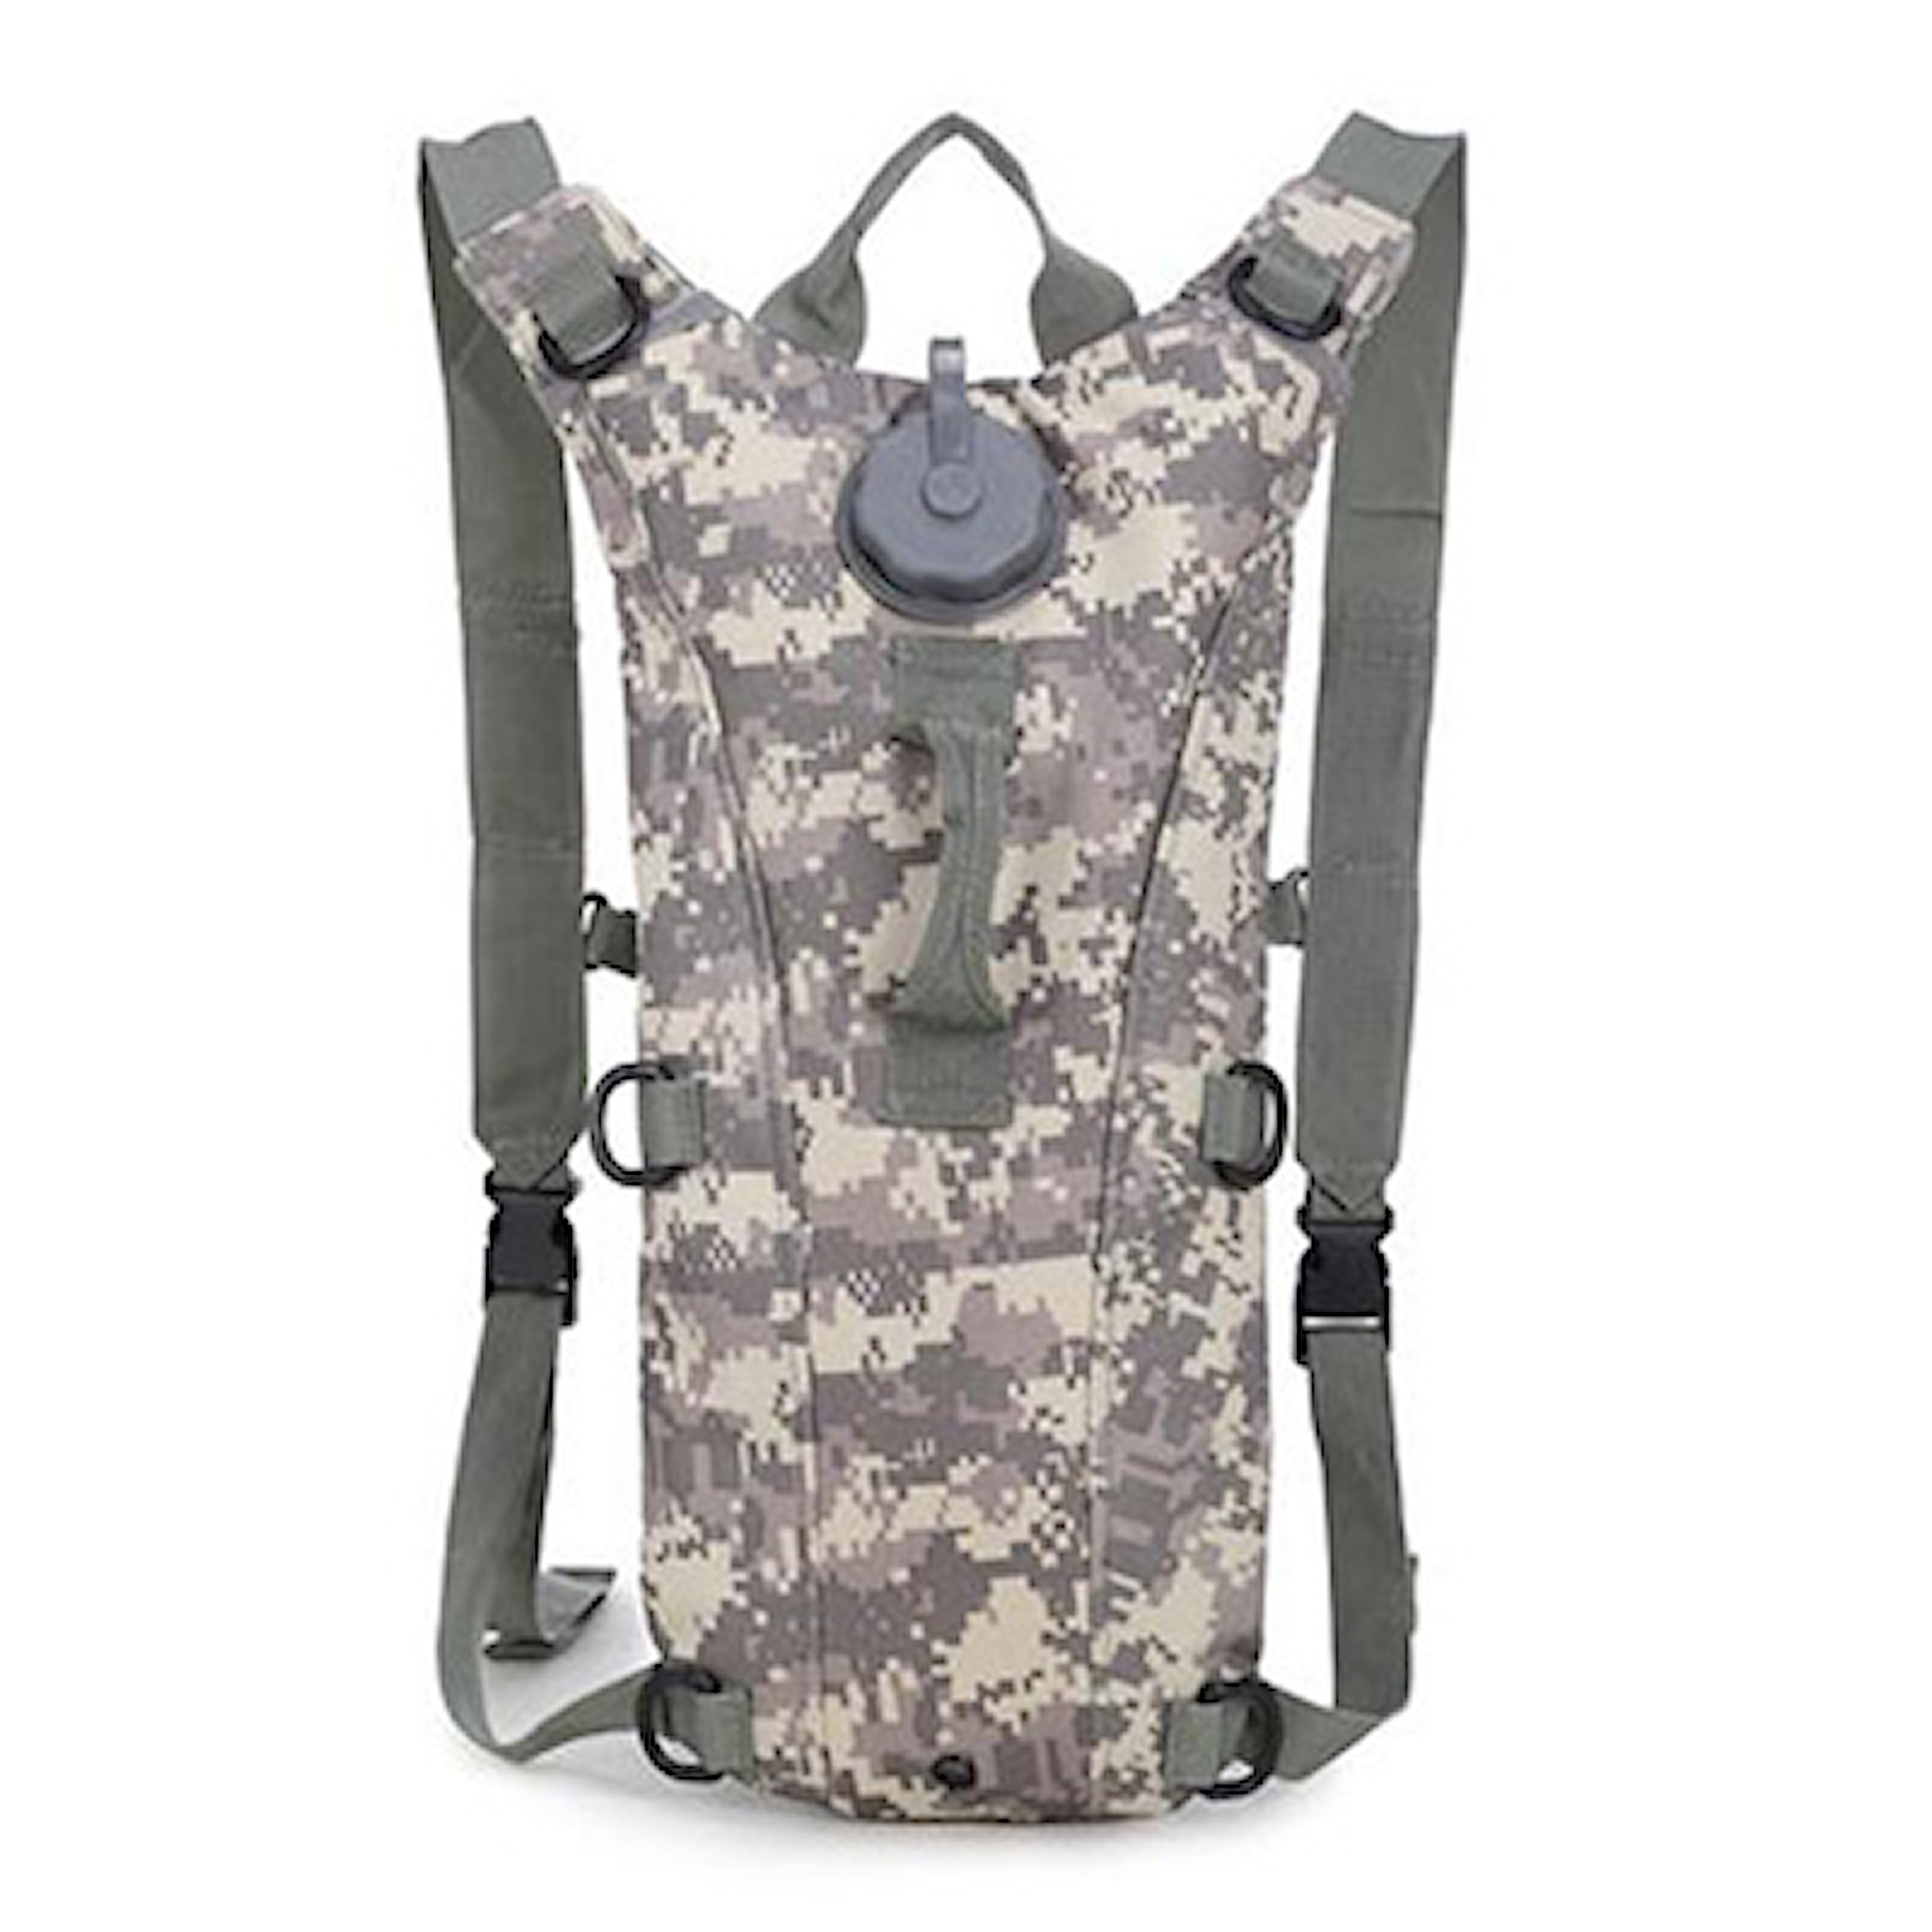 ACU Camo, Tactical Hydration Backpack, Ryggsäck med 3 l vätskesystem, ,